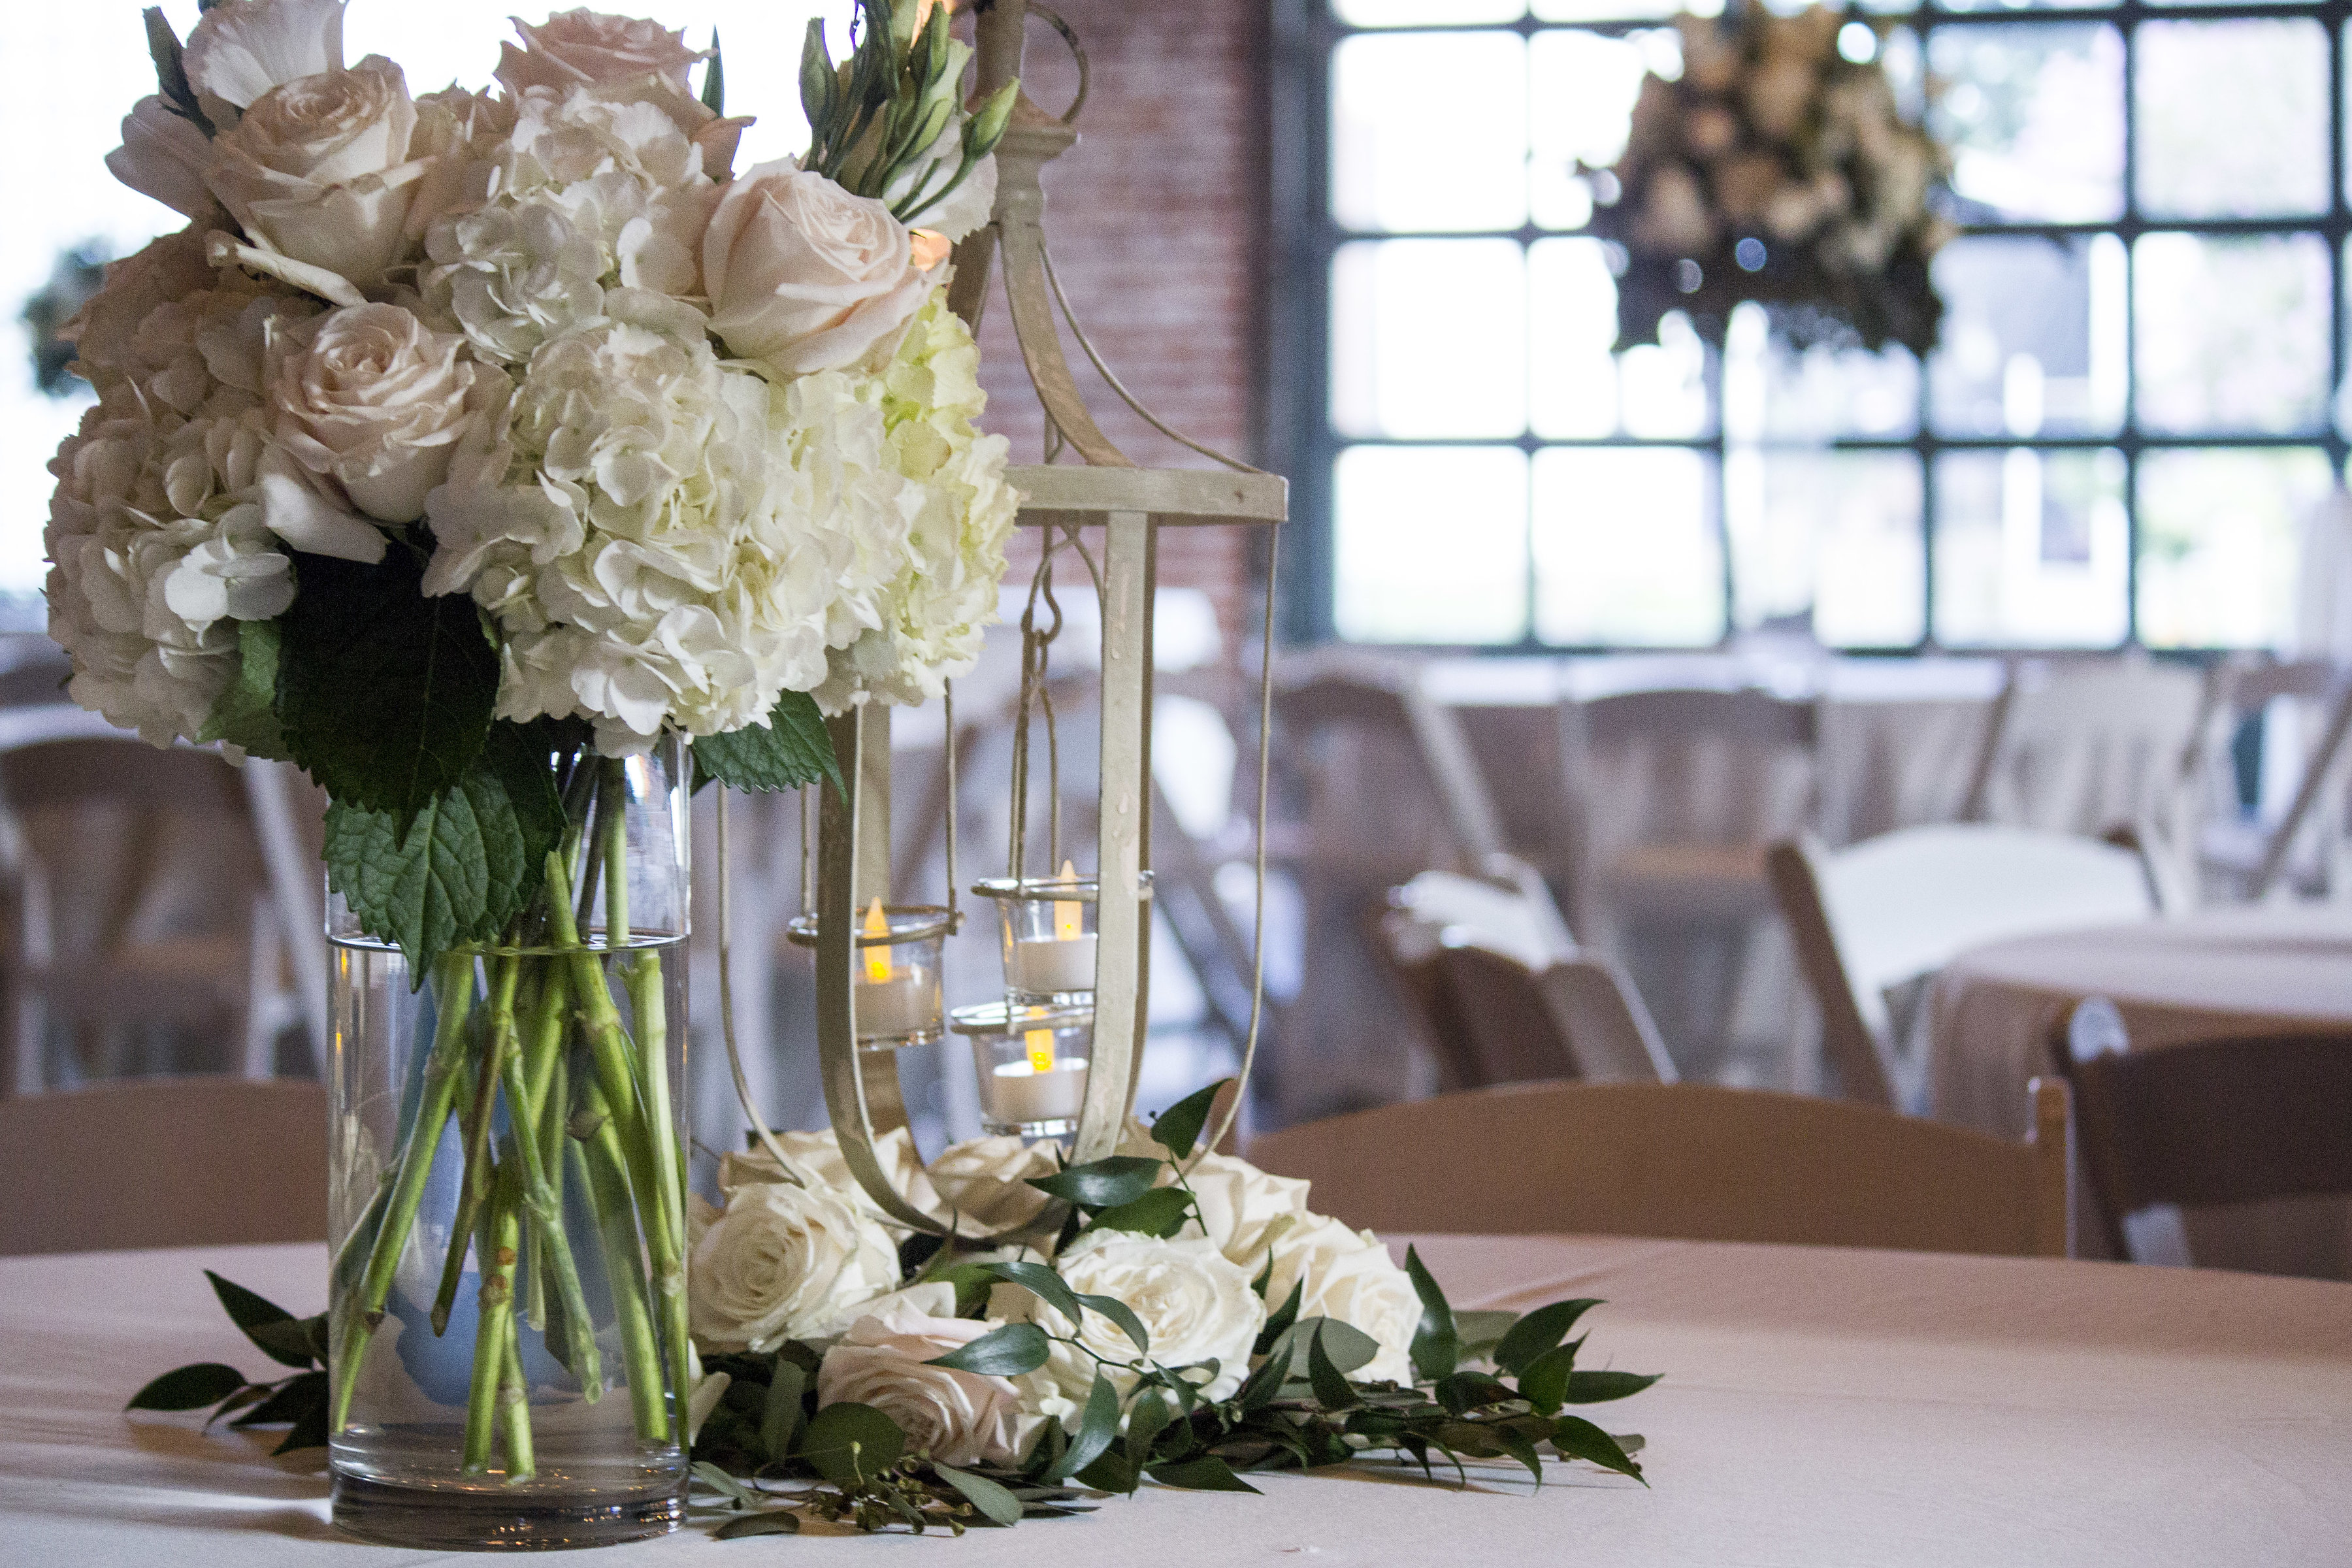 The wedding venue, The Magdalen Place, located in Abbeville, Louisiana is set up for a wedding reception.